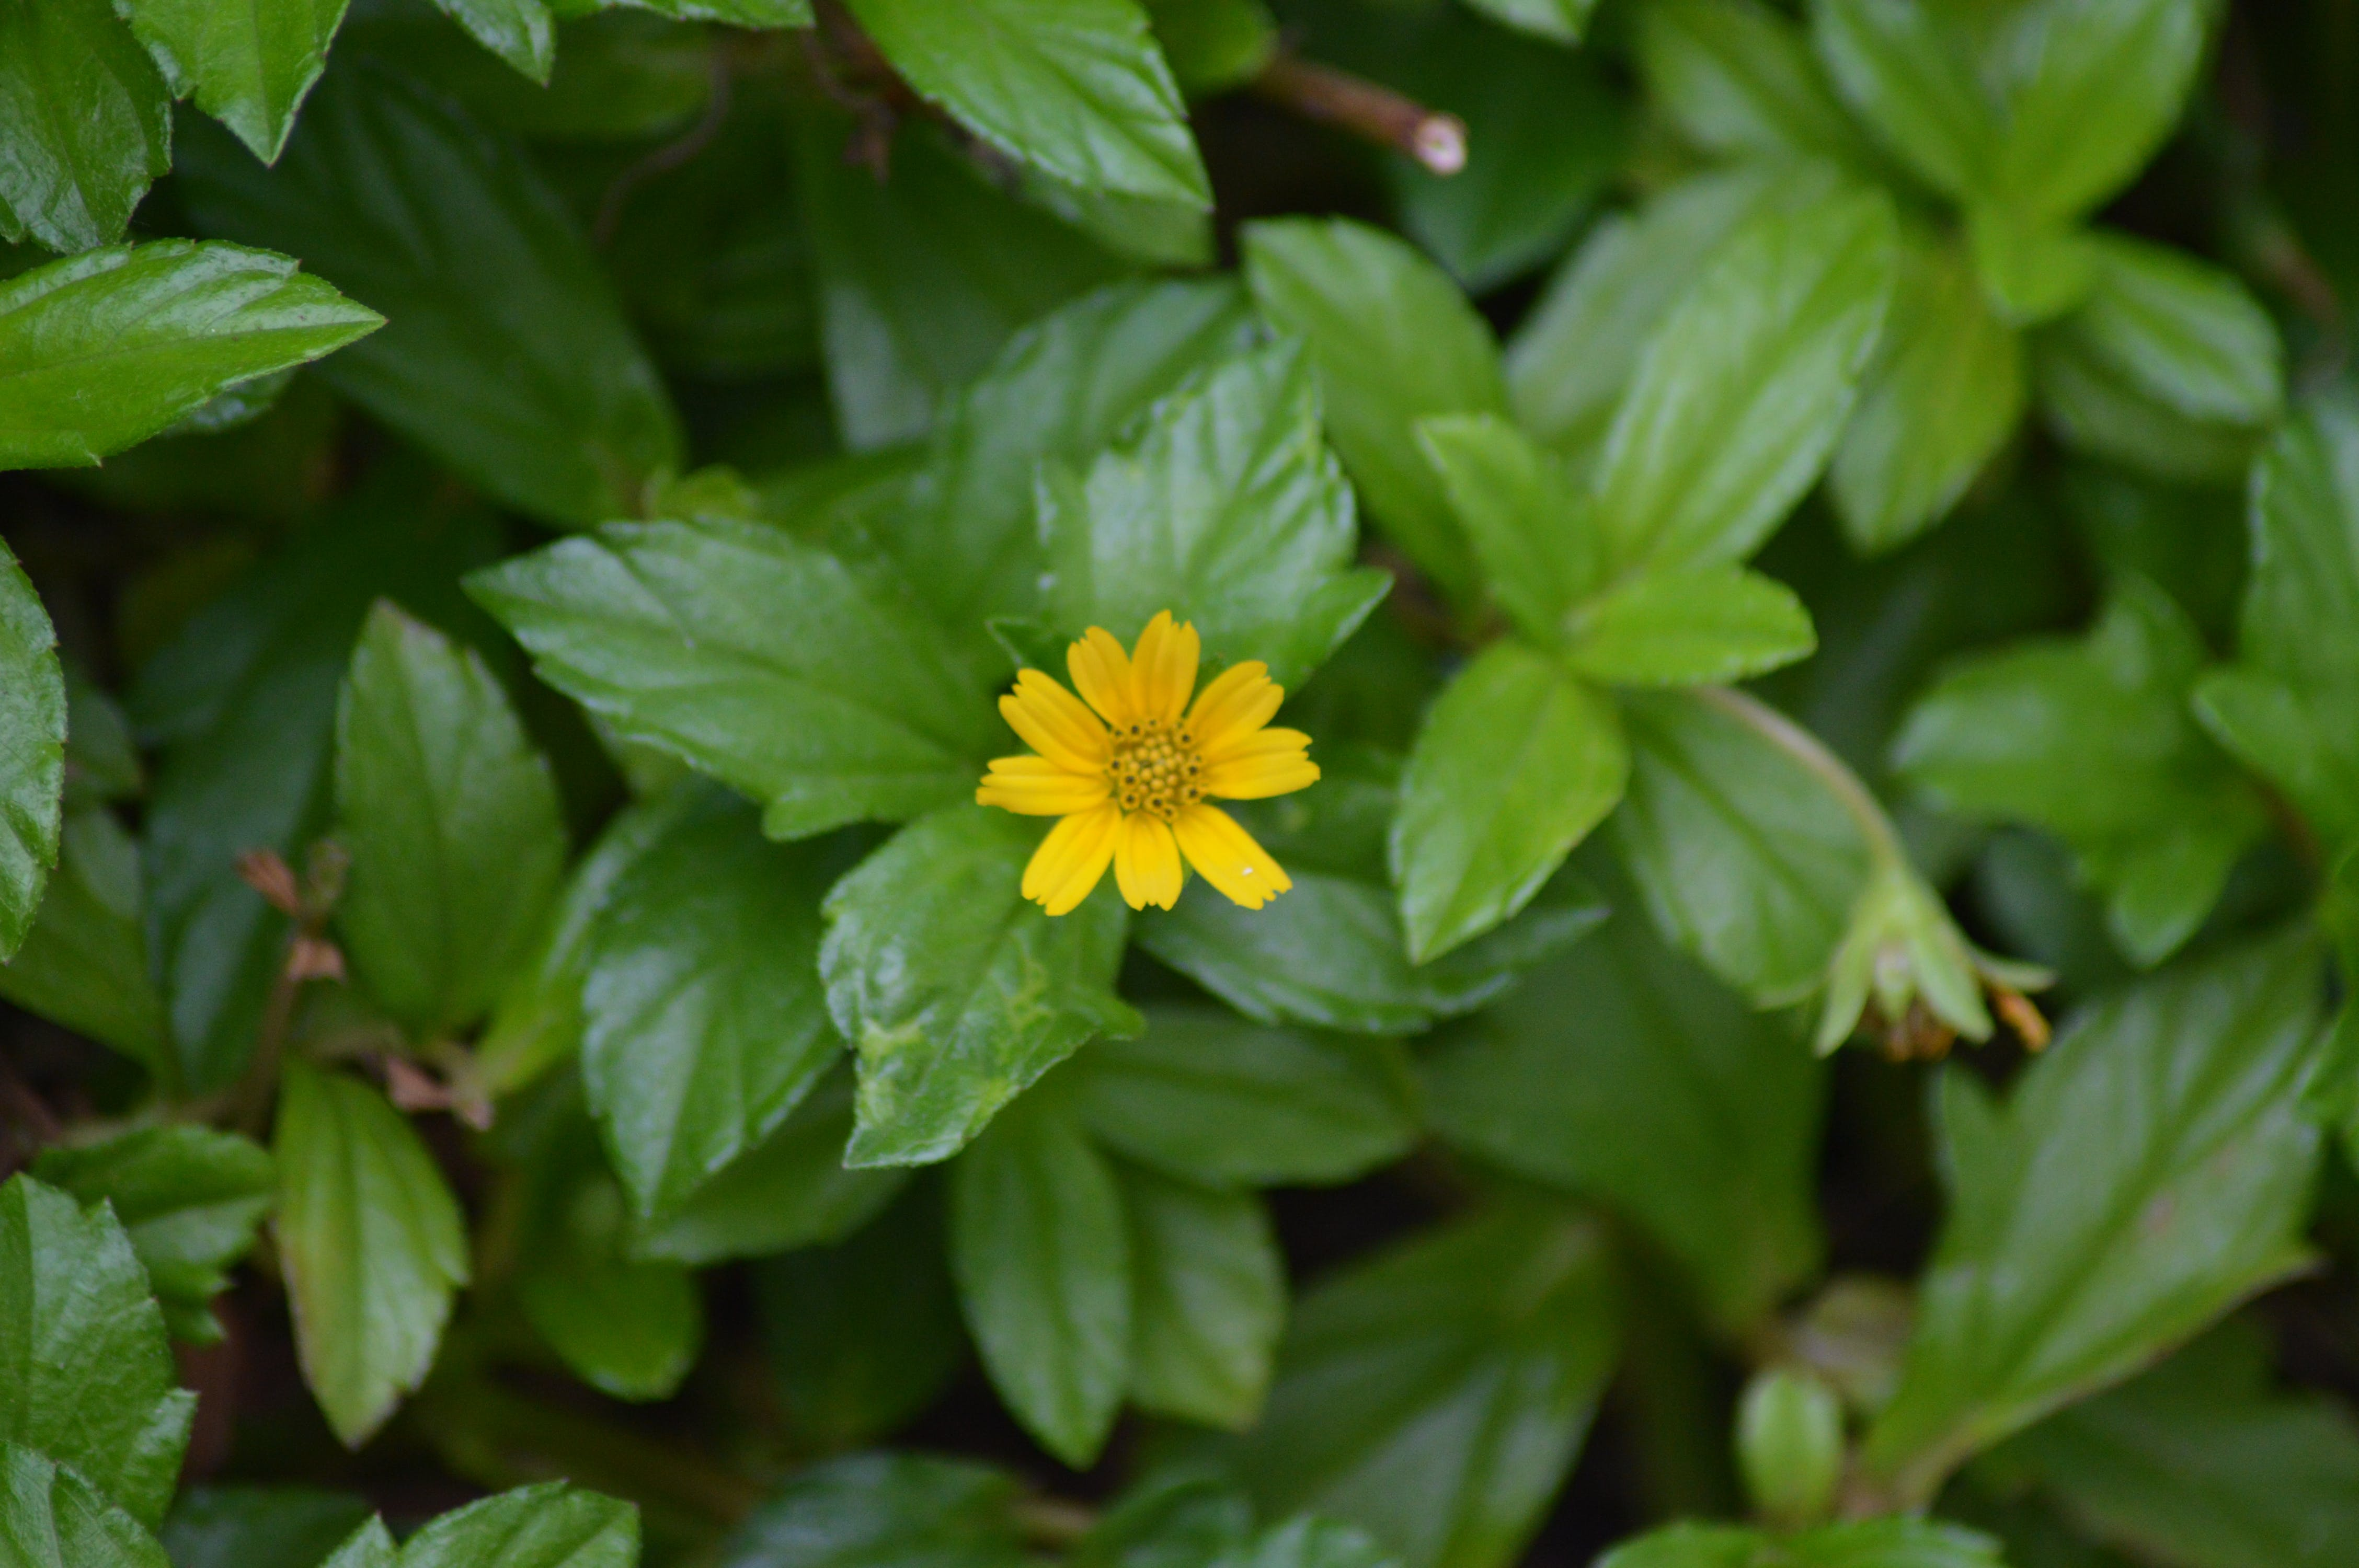 Free stock photo of flower, green background, yellow flower